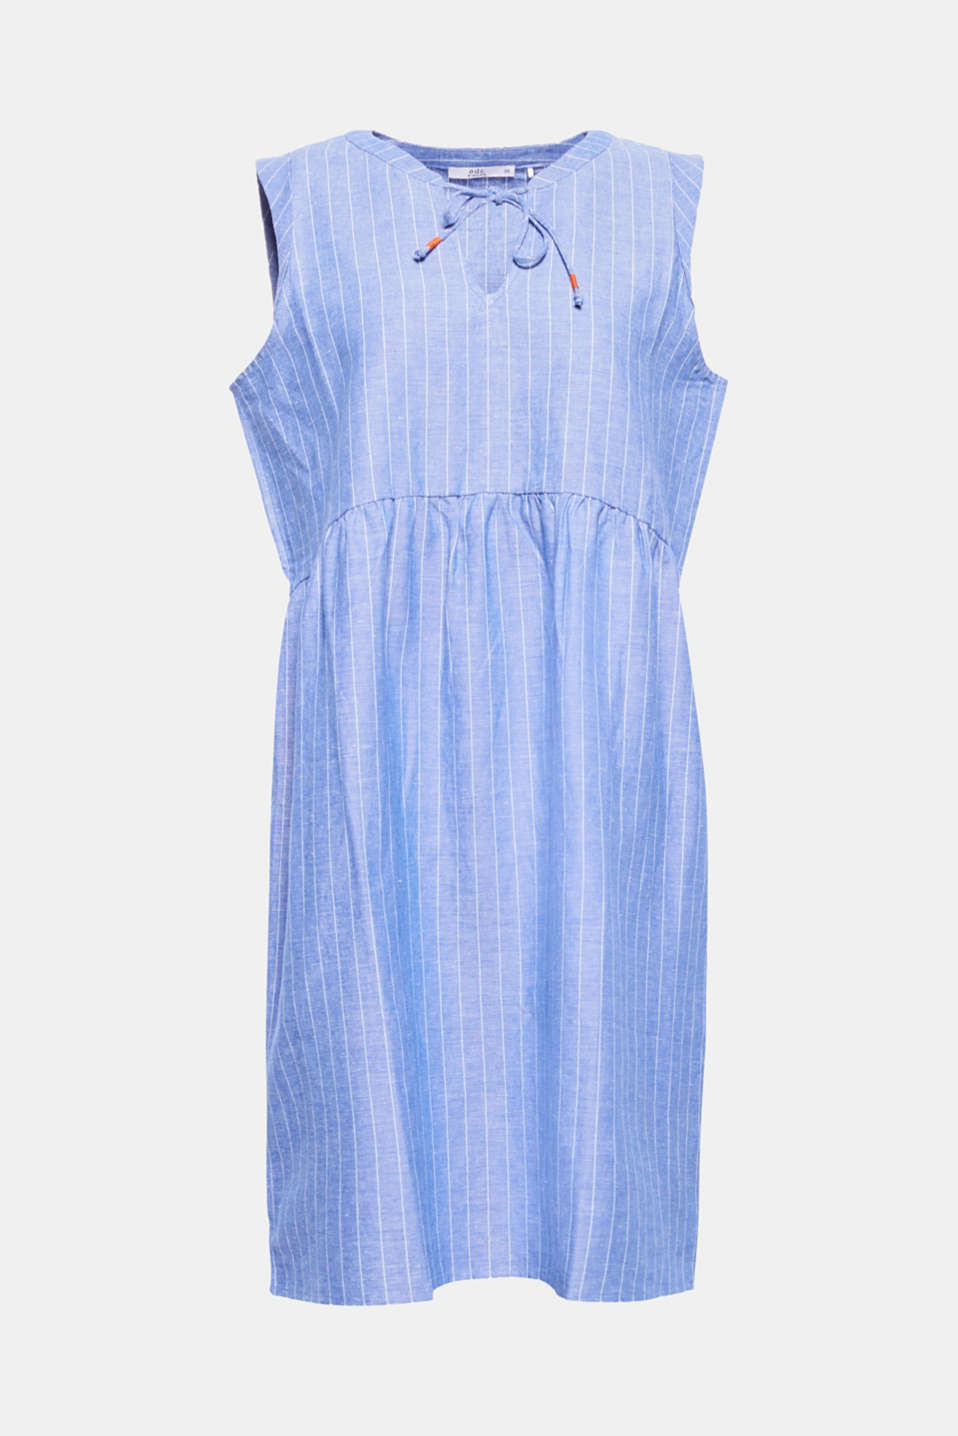 Crafted from an airy cotton/linen blend, this figure-skimming dress with a fine striped pattern is the perfect piece for warm summer days.